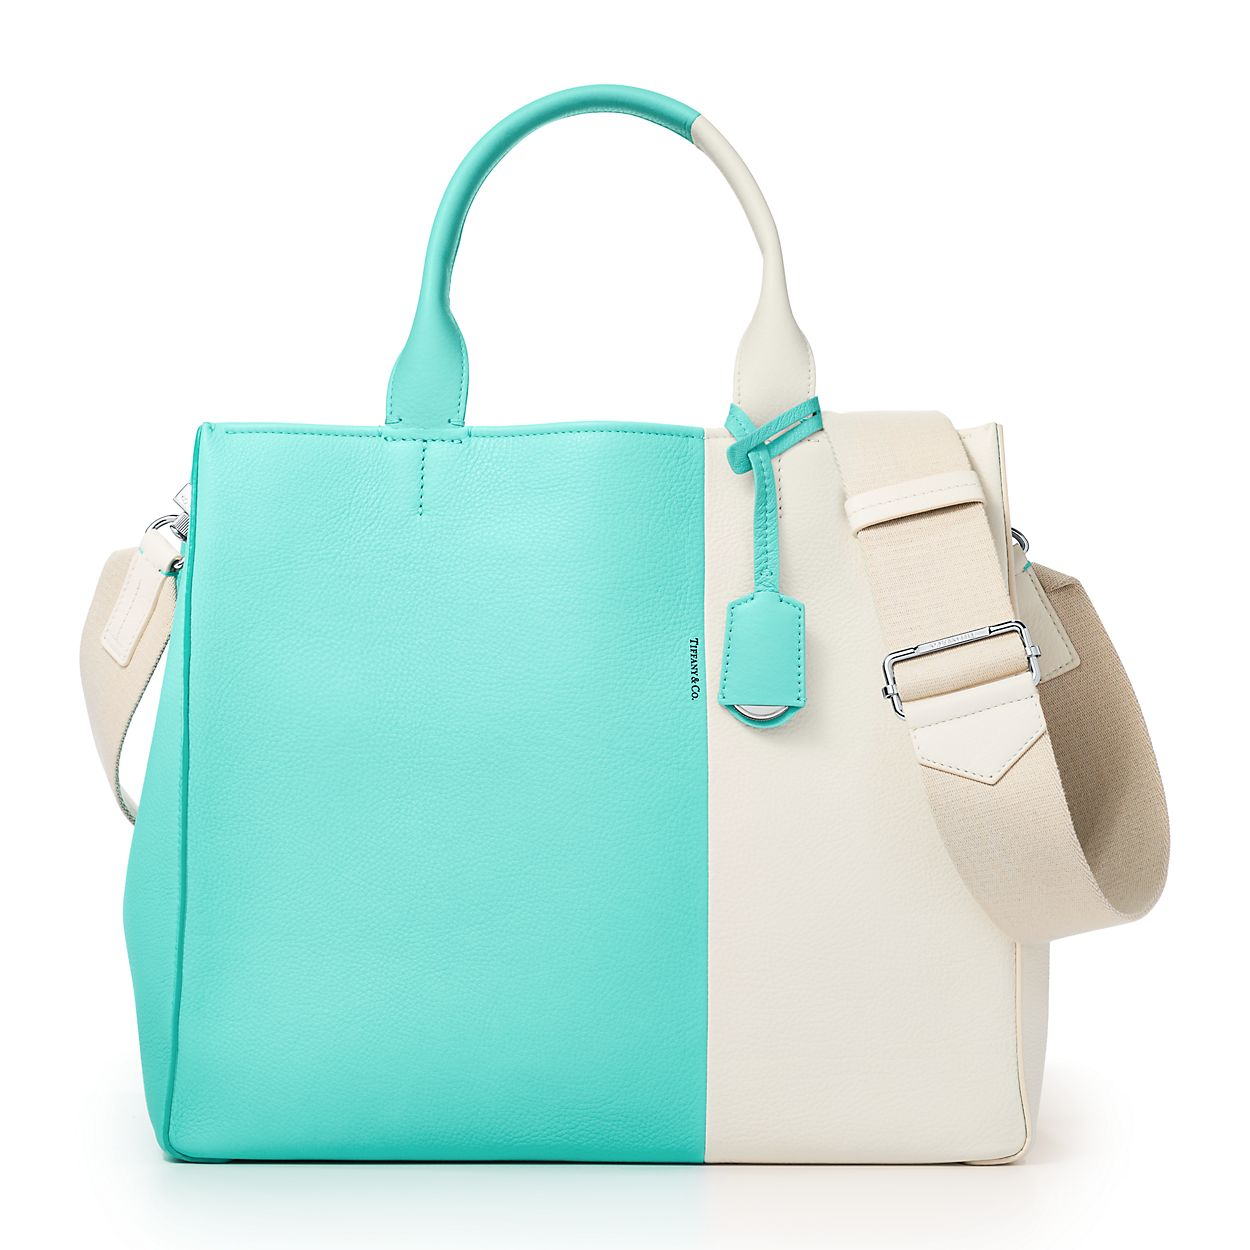 Womens tote in Tiffany Blue grain calfskin leather Tiffany & Co. x8jdYxR